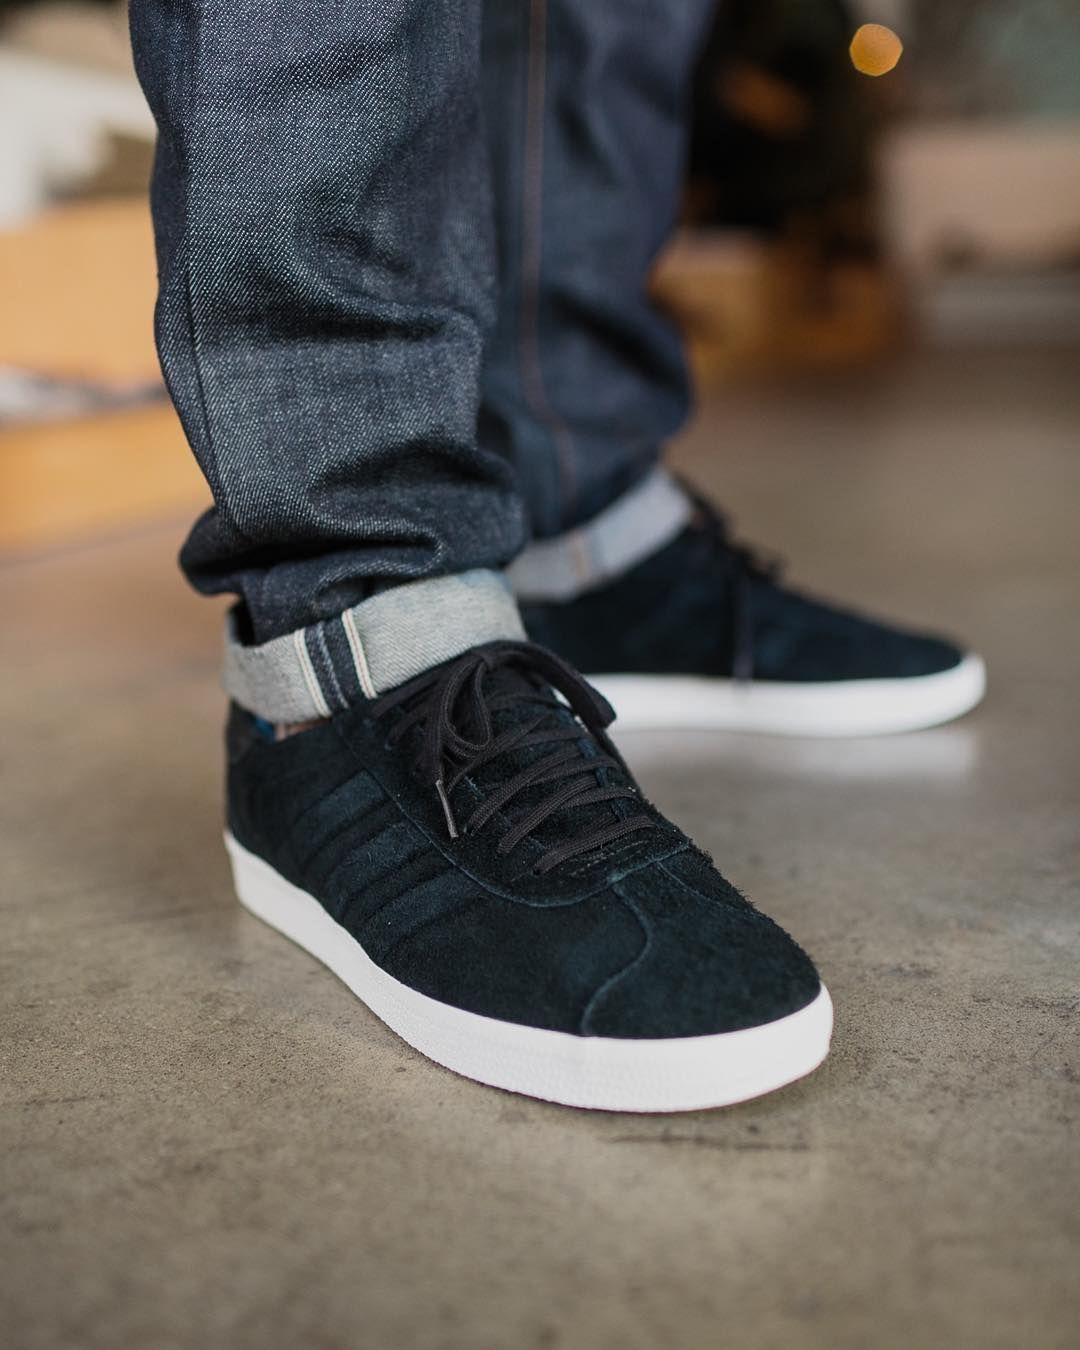 suede sneakers - Black Wings+Horns Free Shipping Low Shipping Fee Sale Explore Huge Surprise Odc5JPNi